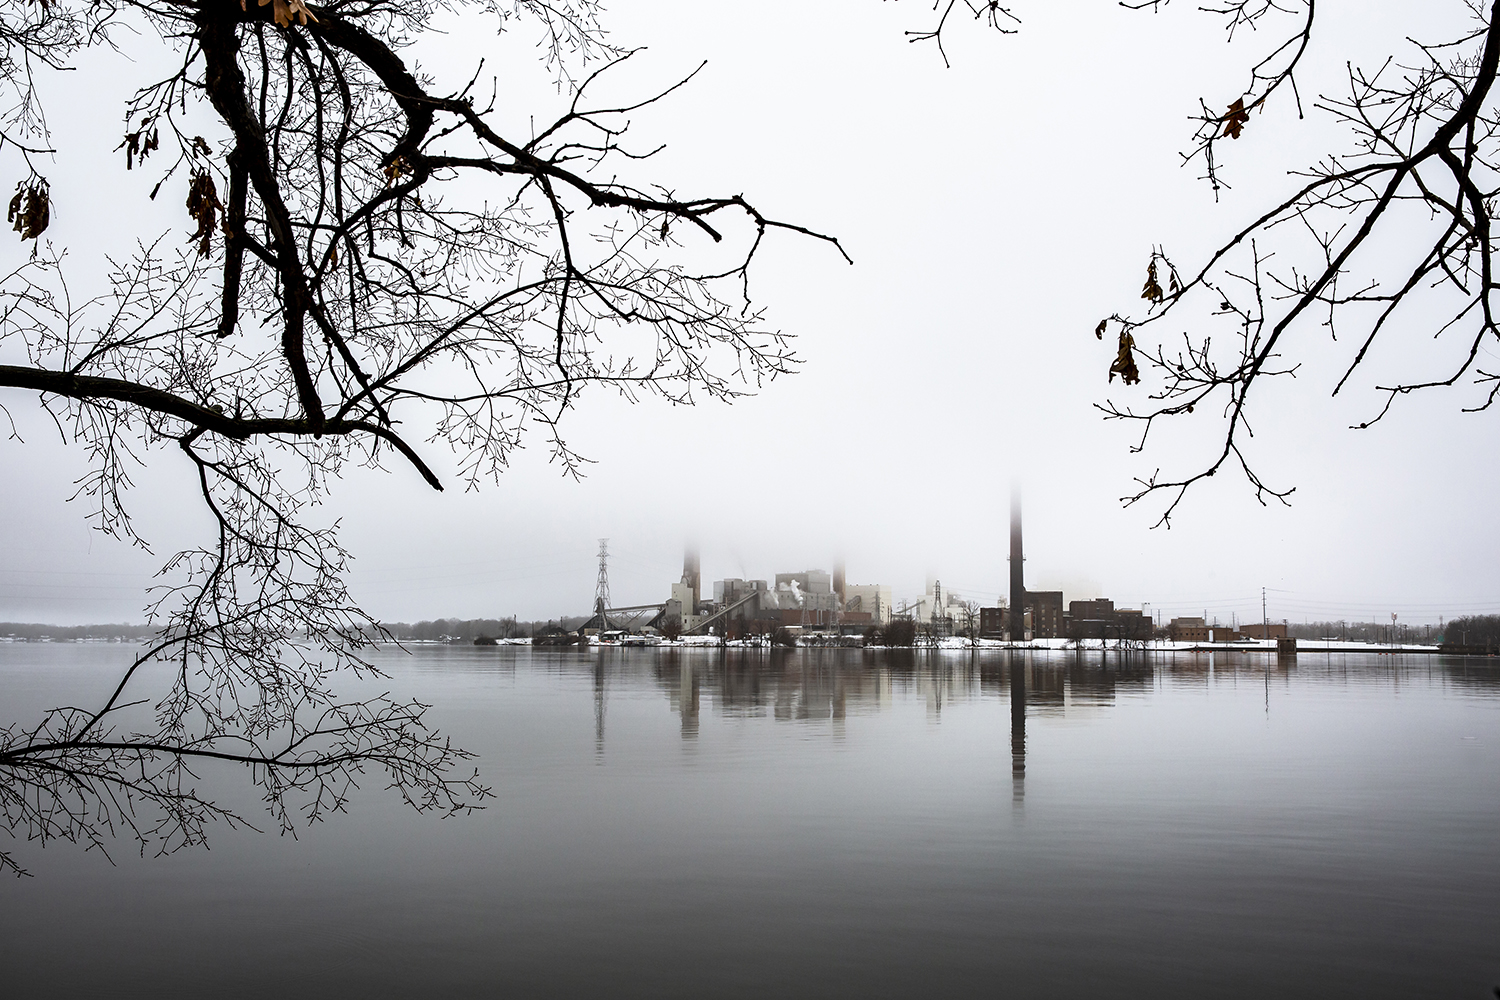 Fog over Lake Springfield obscures CWLP's Dallman 4 power station Thursday, Jan. 17, 2019 in Springfield, Ill. [Rich Saal/The State Journal-Register]